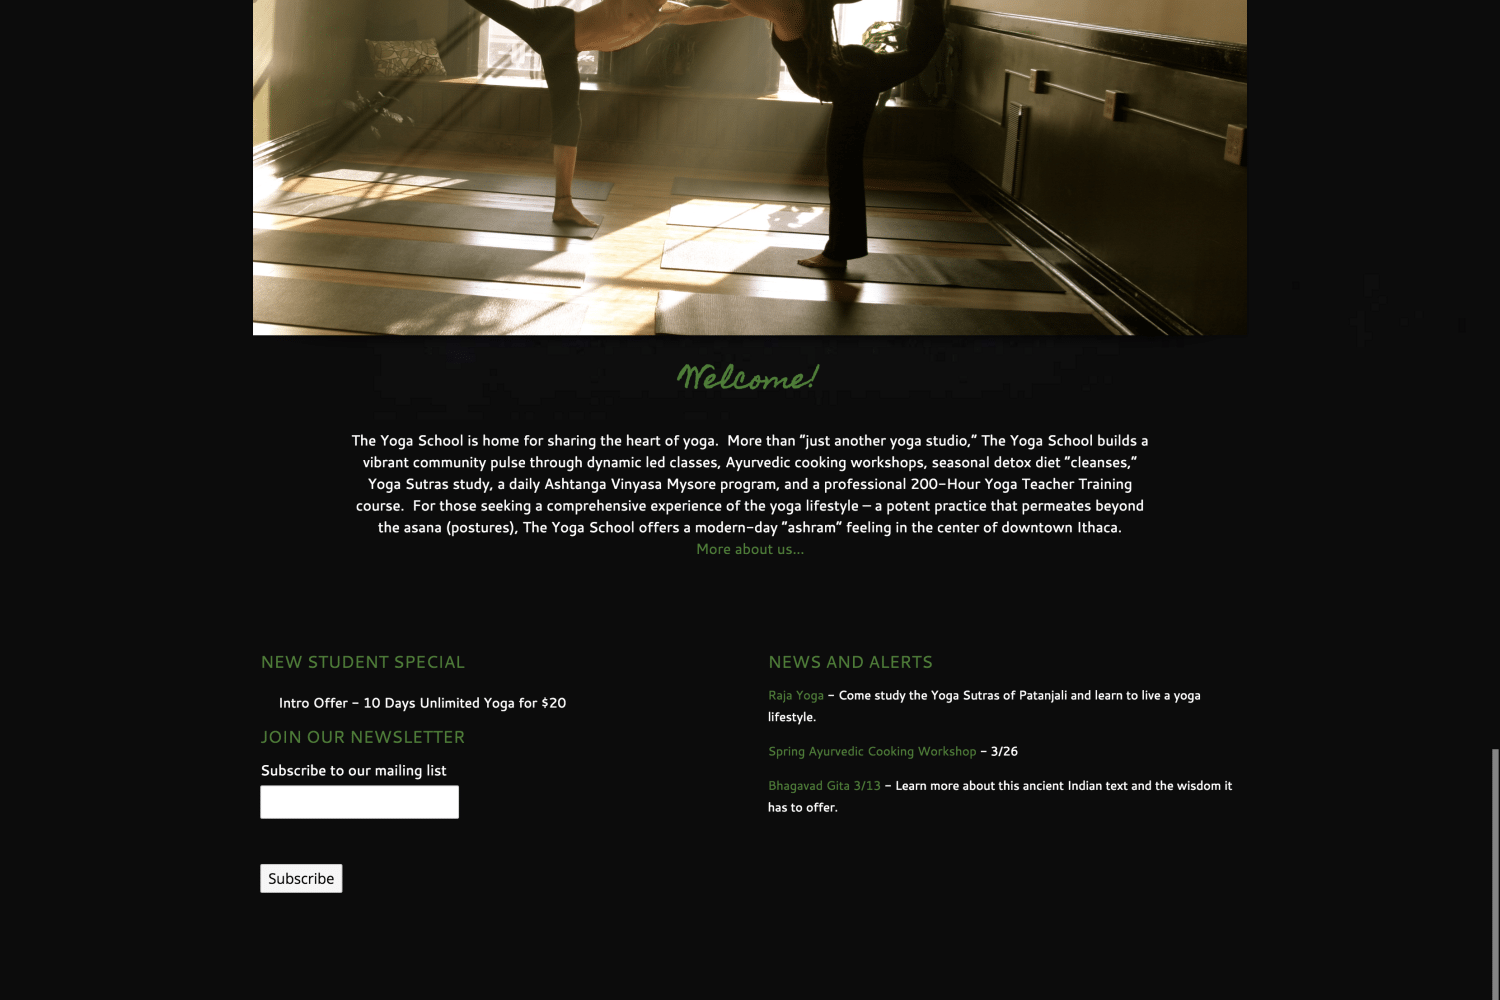 Website Design | The Yoga School | focused target market of yoga enthusists, training, and workshops | yoga school located in Ithaca, NY